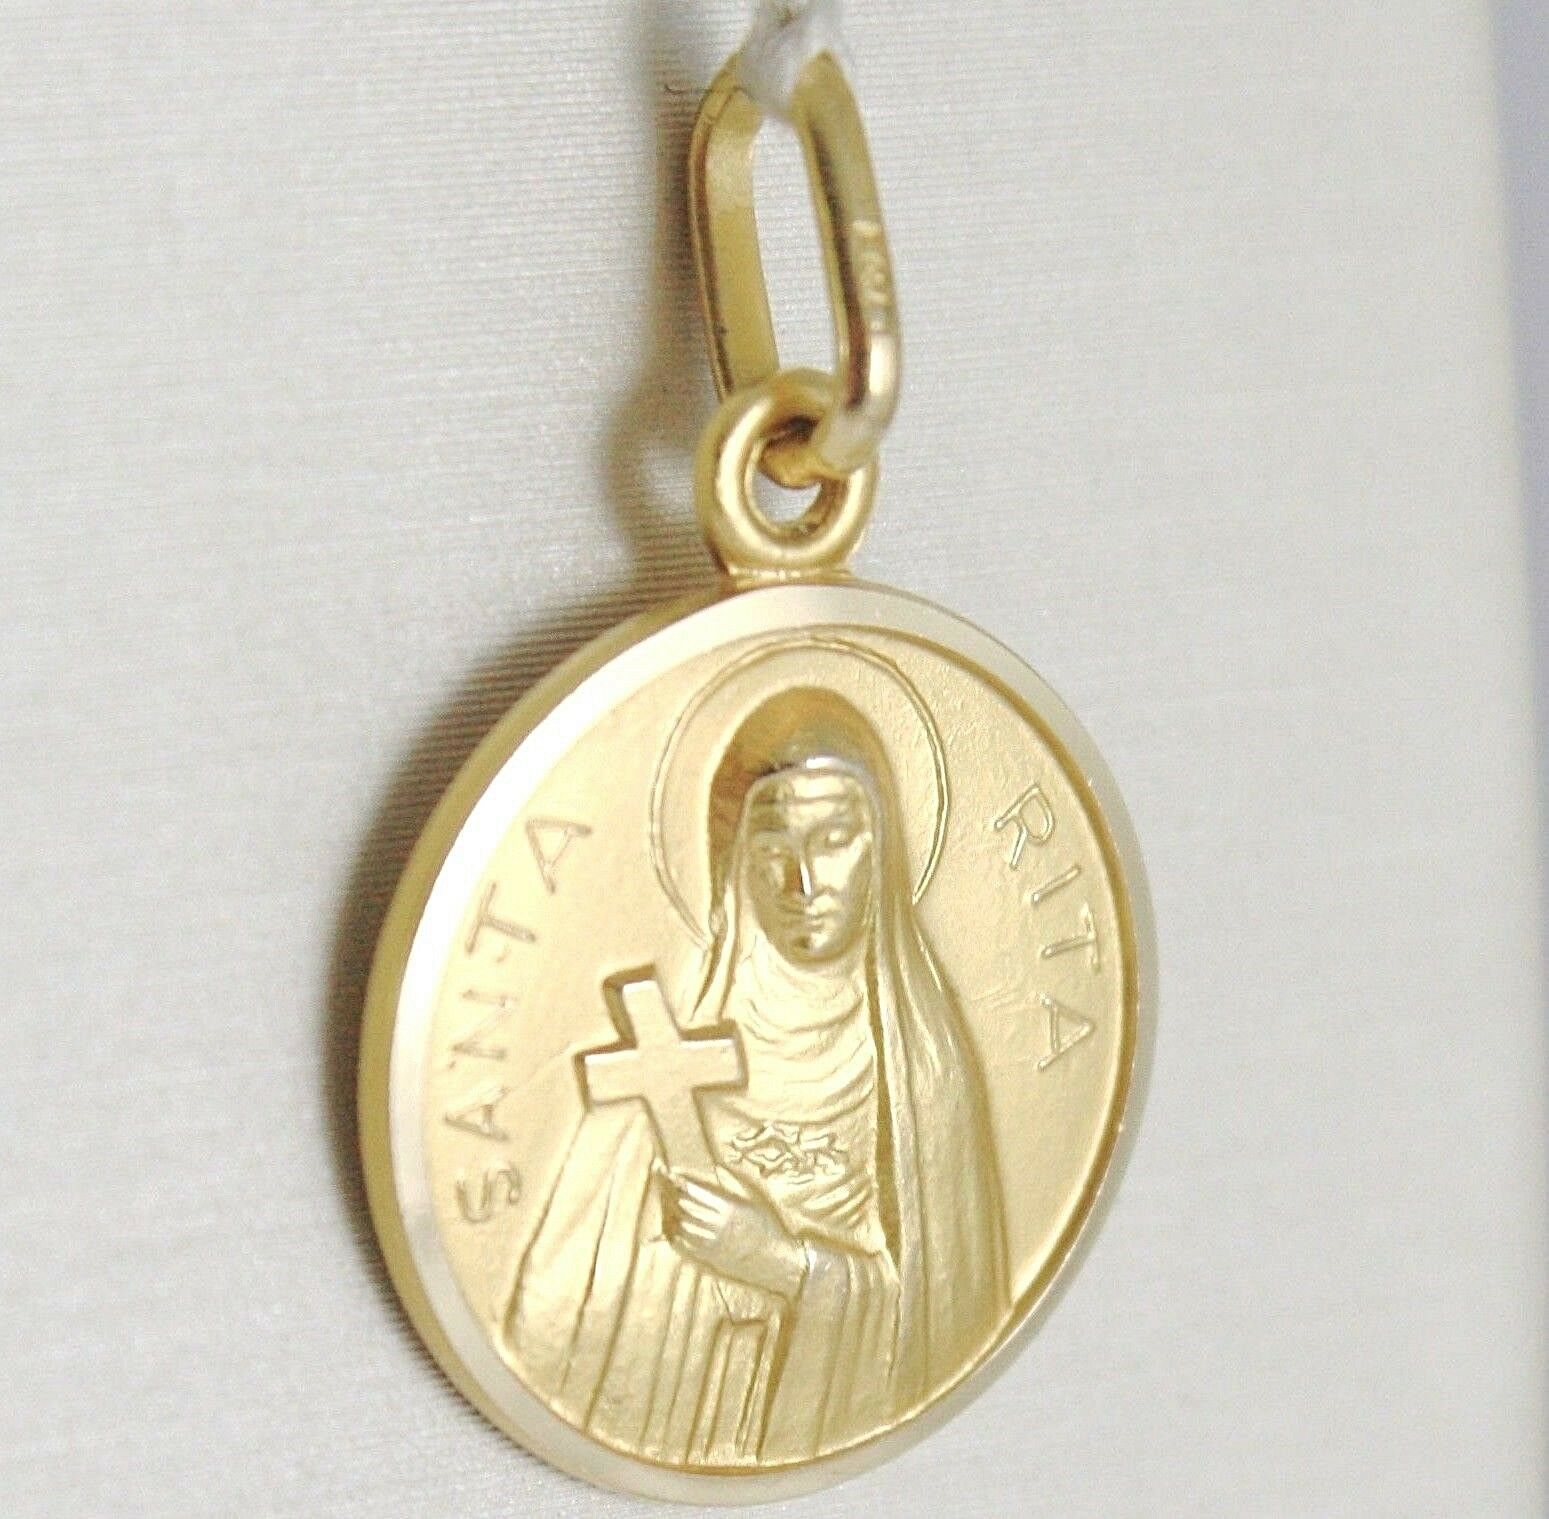 SOLID 18K YELLOW GOLD HOLY ST SAINT SANTA RITA ROUND MEDAL MADE IN ITALY, 13 MM